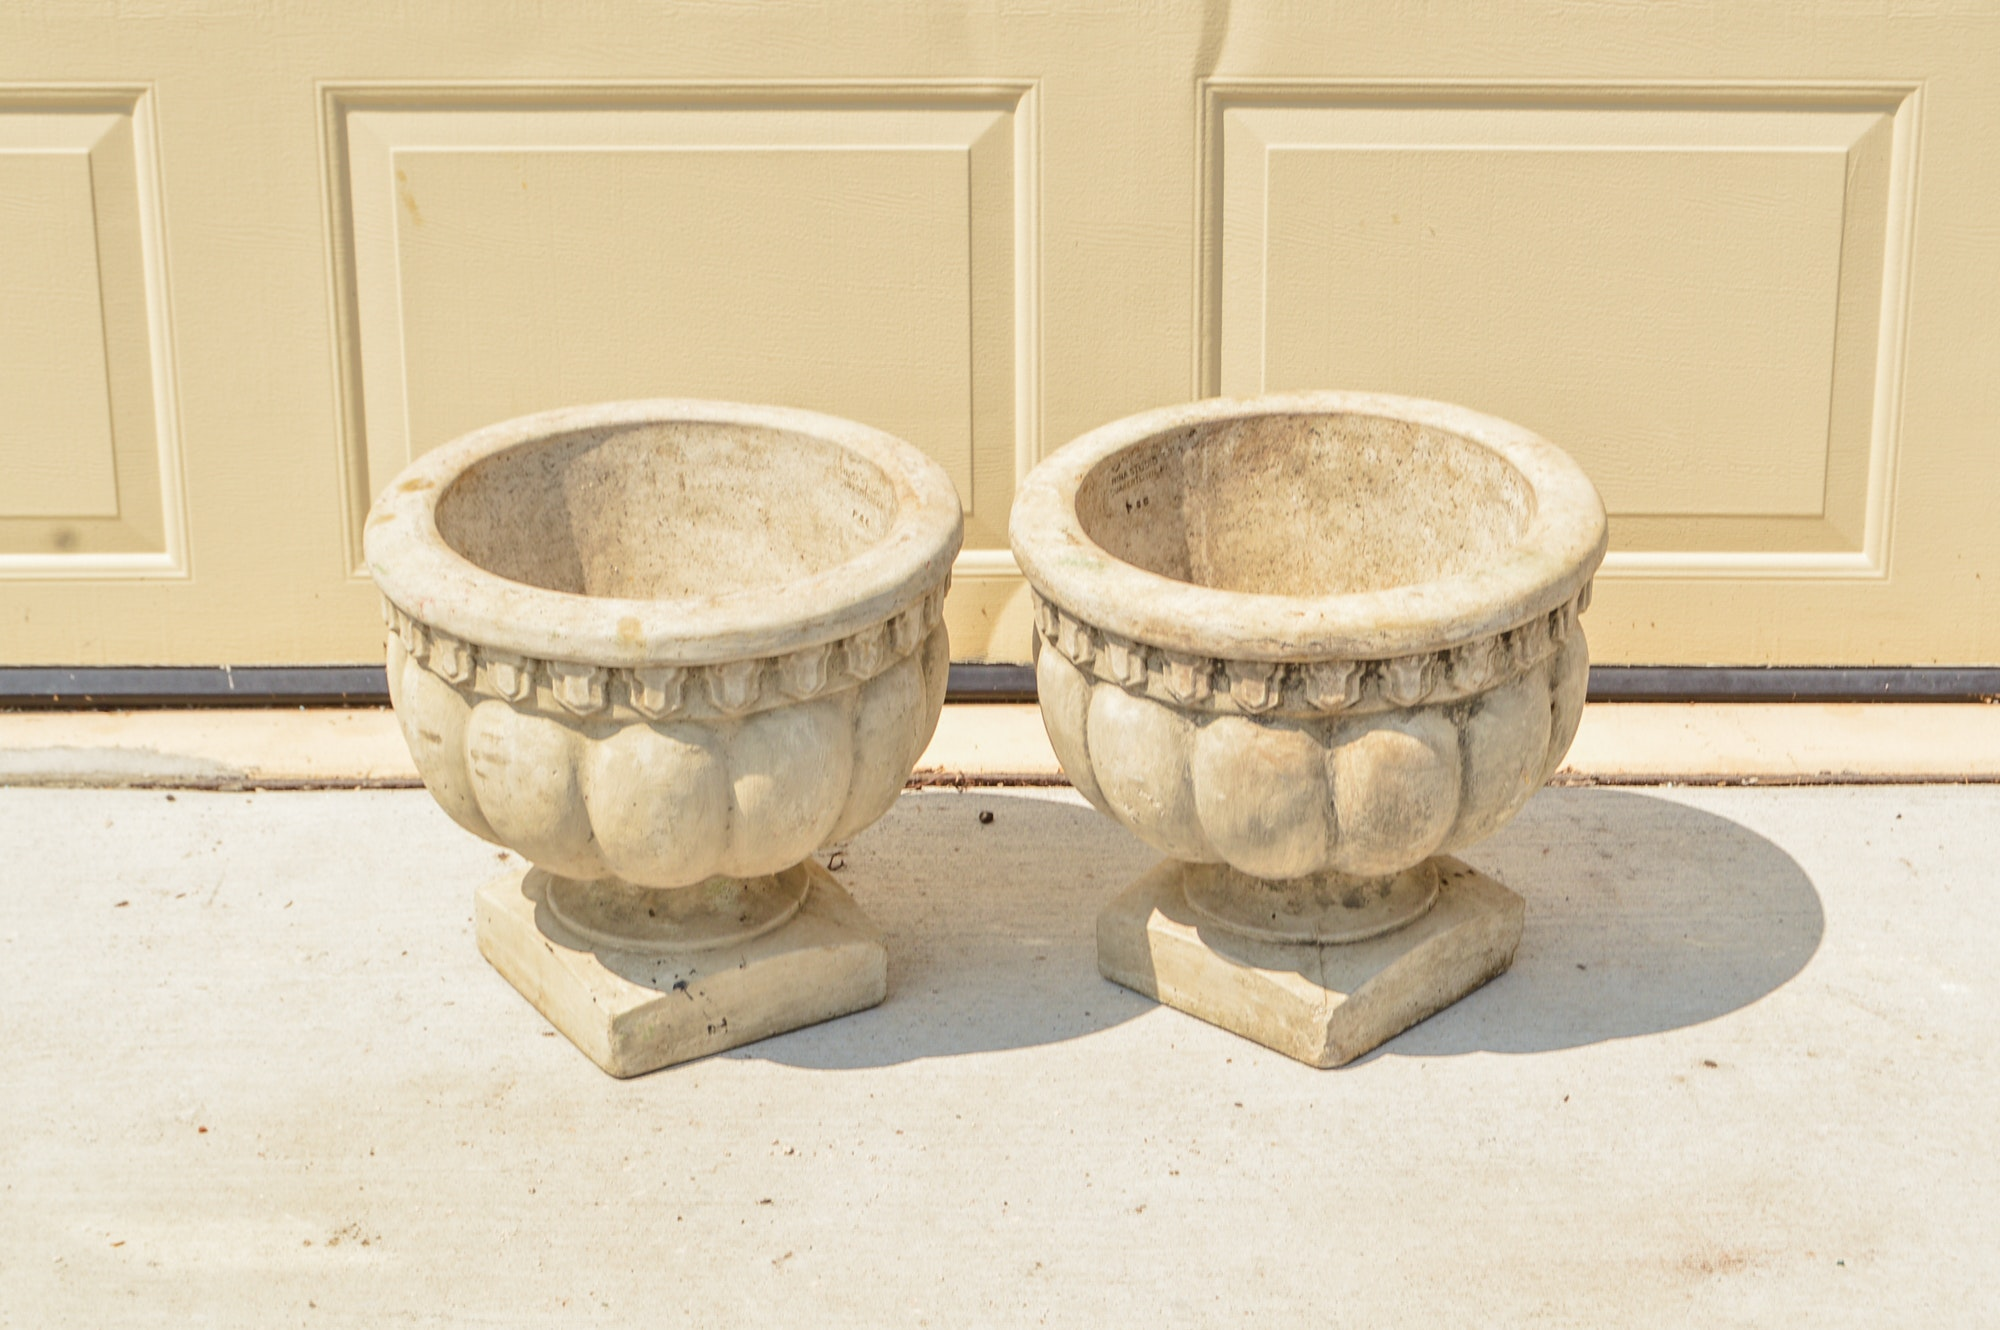 Pair of Gadrooned Pattern Concrete Planters